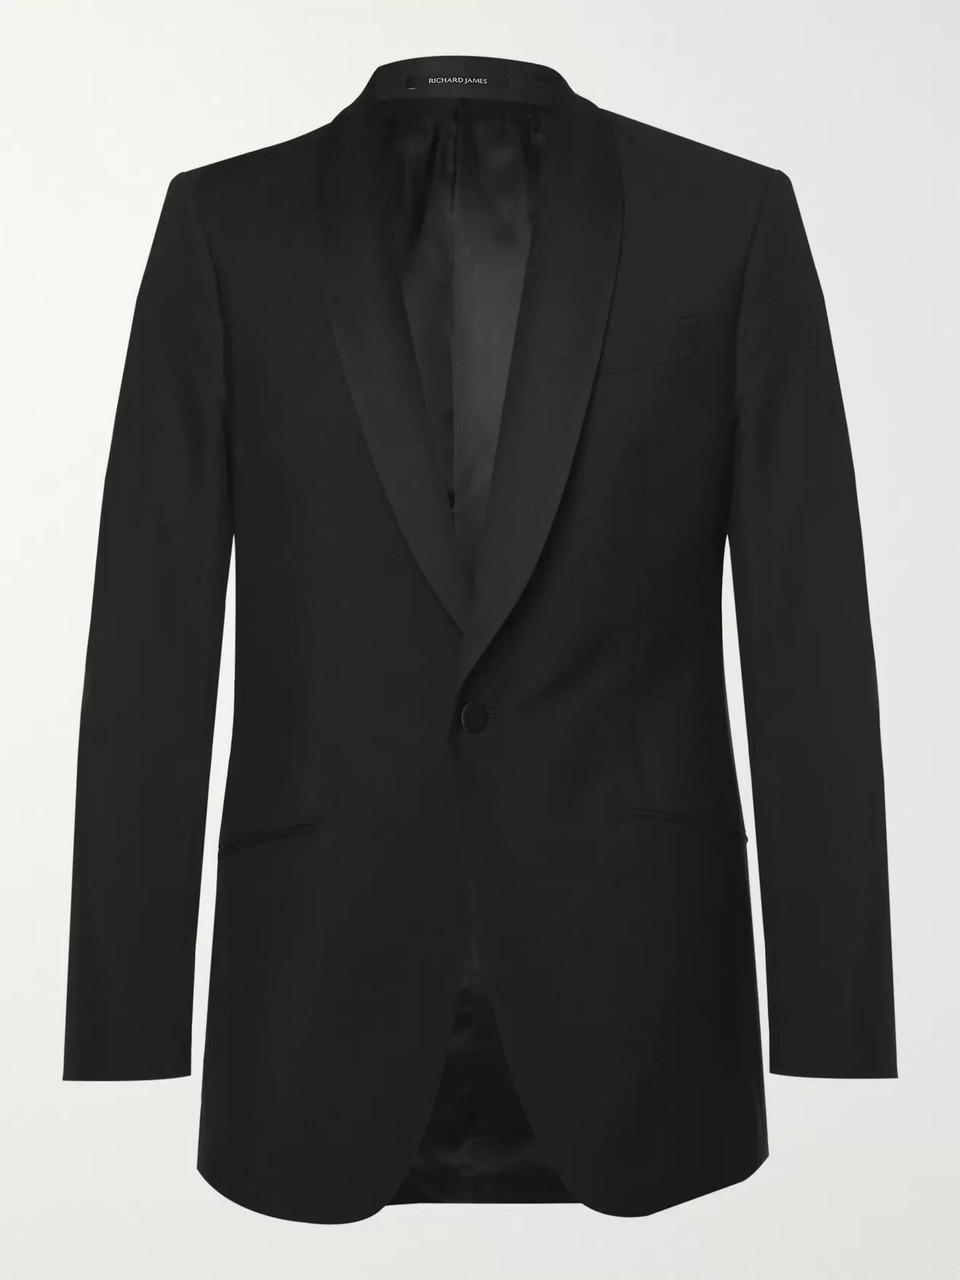 Richard James Black Slim-Fit Wool and Mohair-Blend Tuxedo Jacket